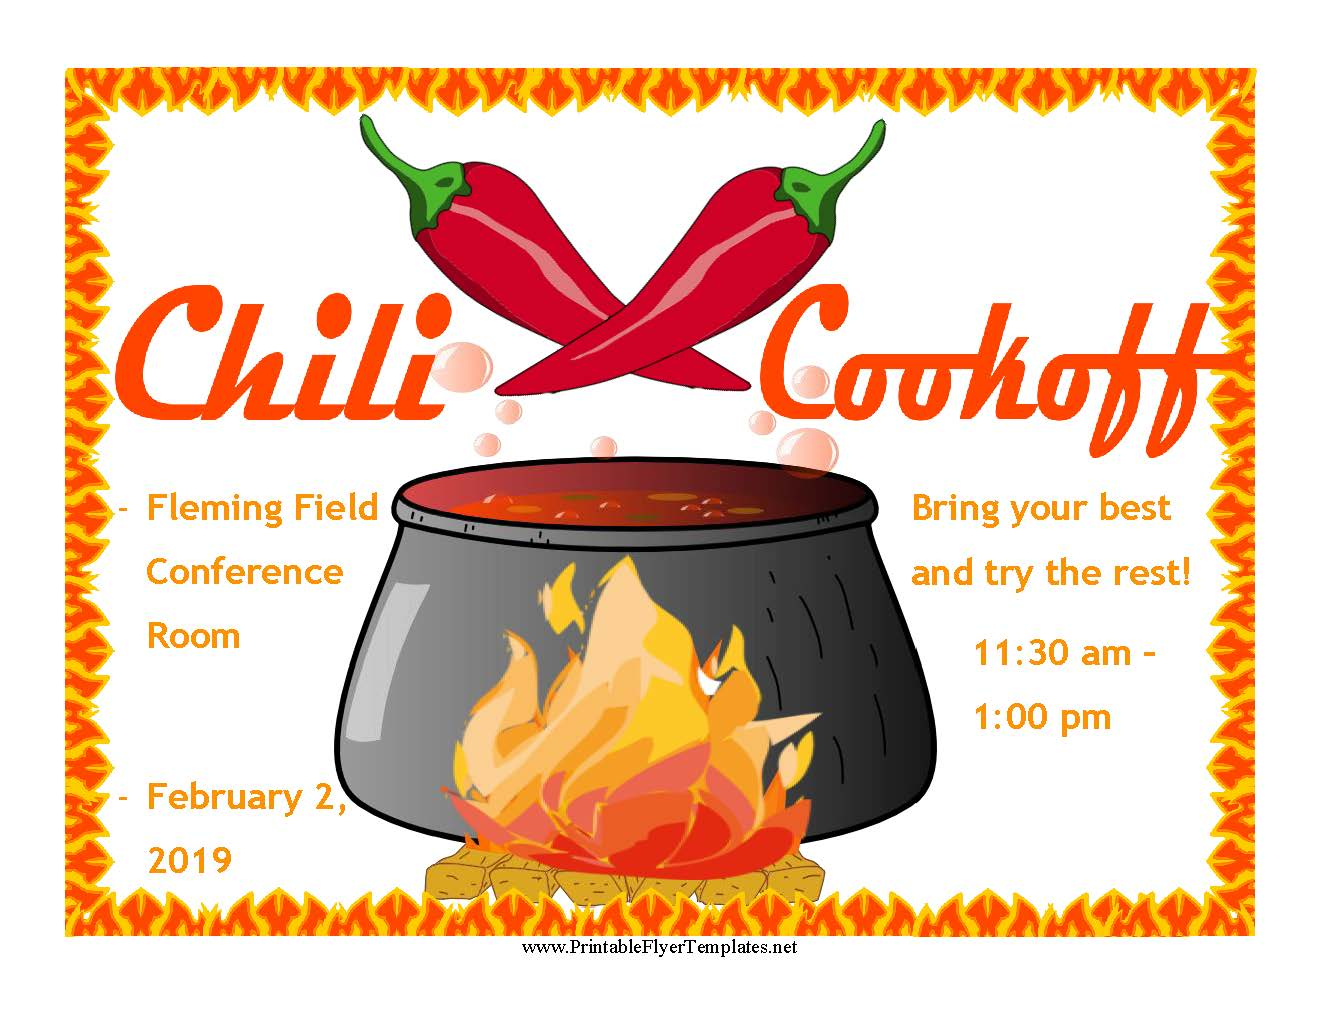 Chili Cook-Off Flyer 2019 picture